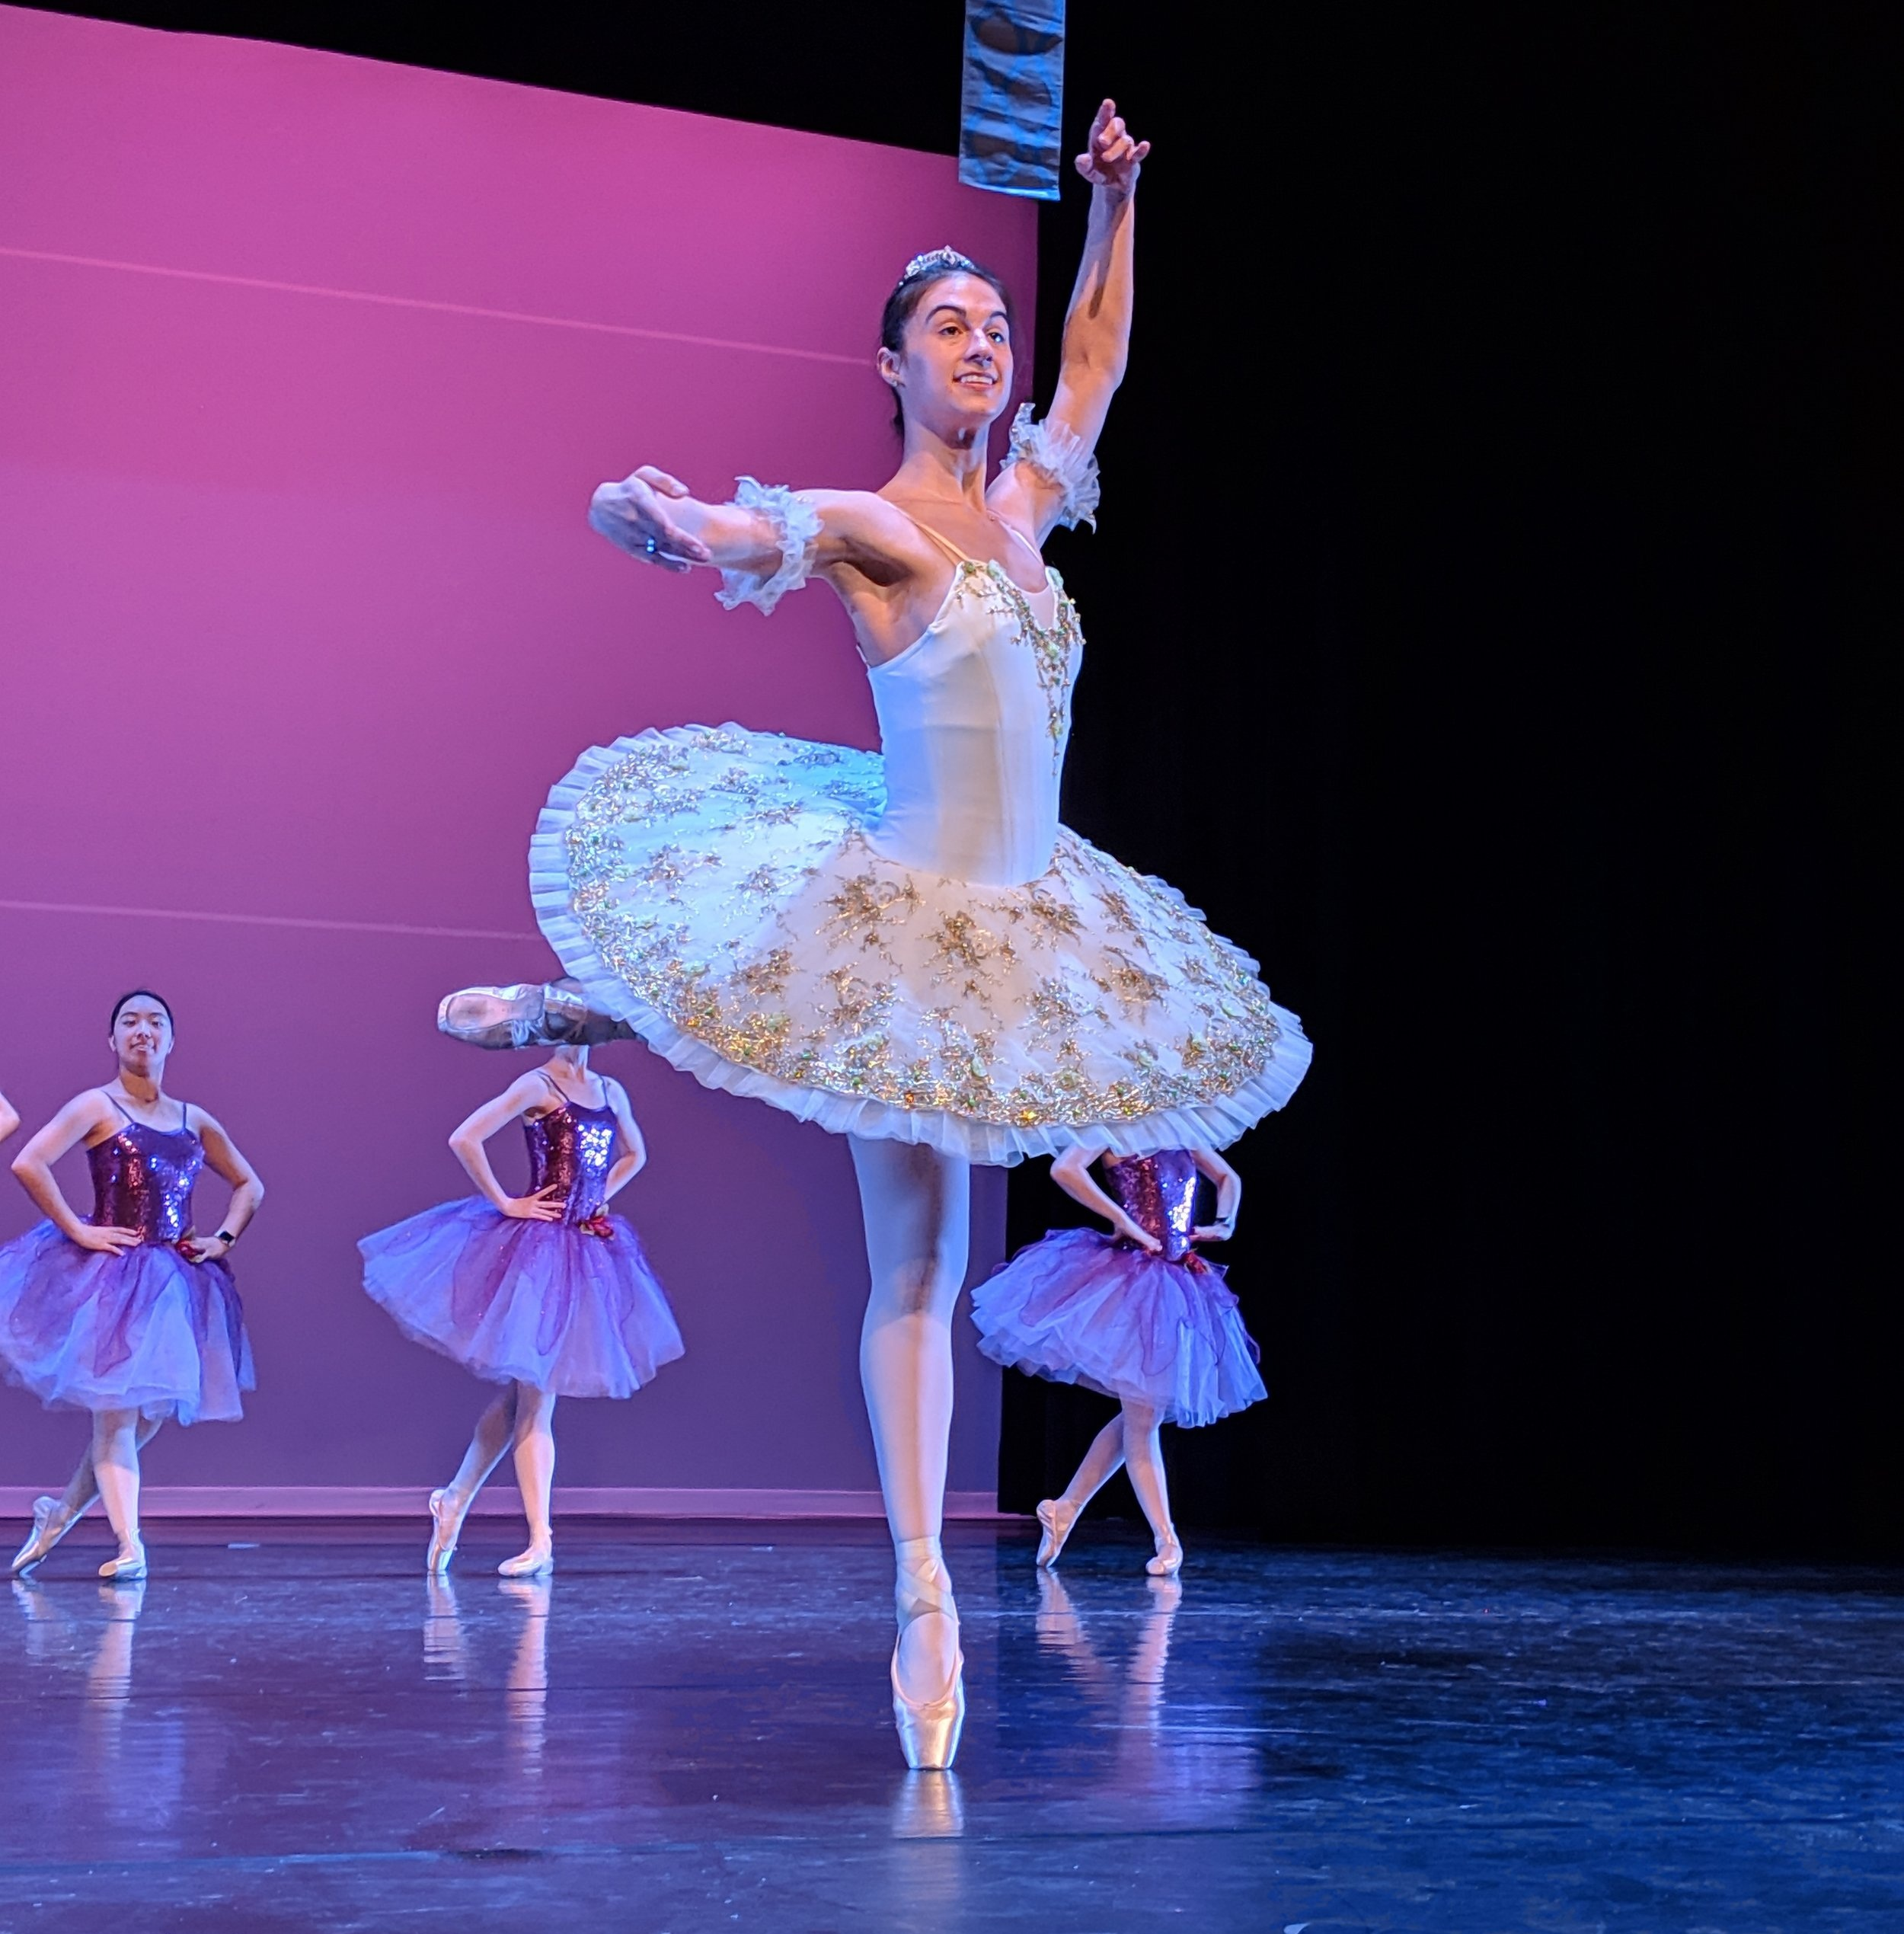 Premium Costume Rental - While other dance studios make you purchase single-use costumes for performances, Misako Ballet Studio & Misako Beats have large varieties of unique dance costumes that students rent for recitals. This allows our growing dancers to enjoy wearing high quality costumes while staying budget-friendly.